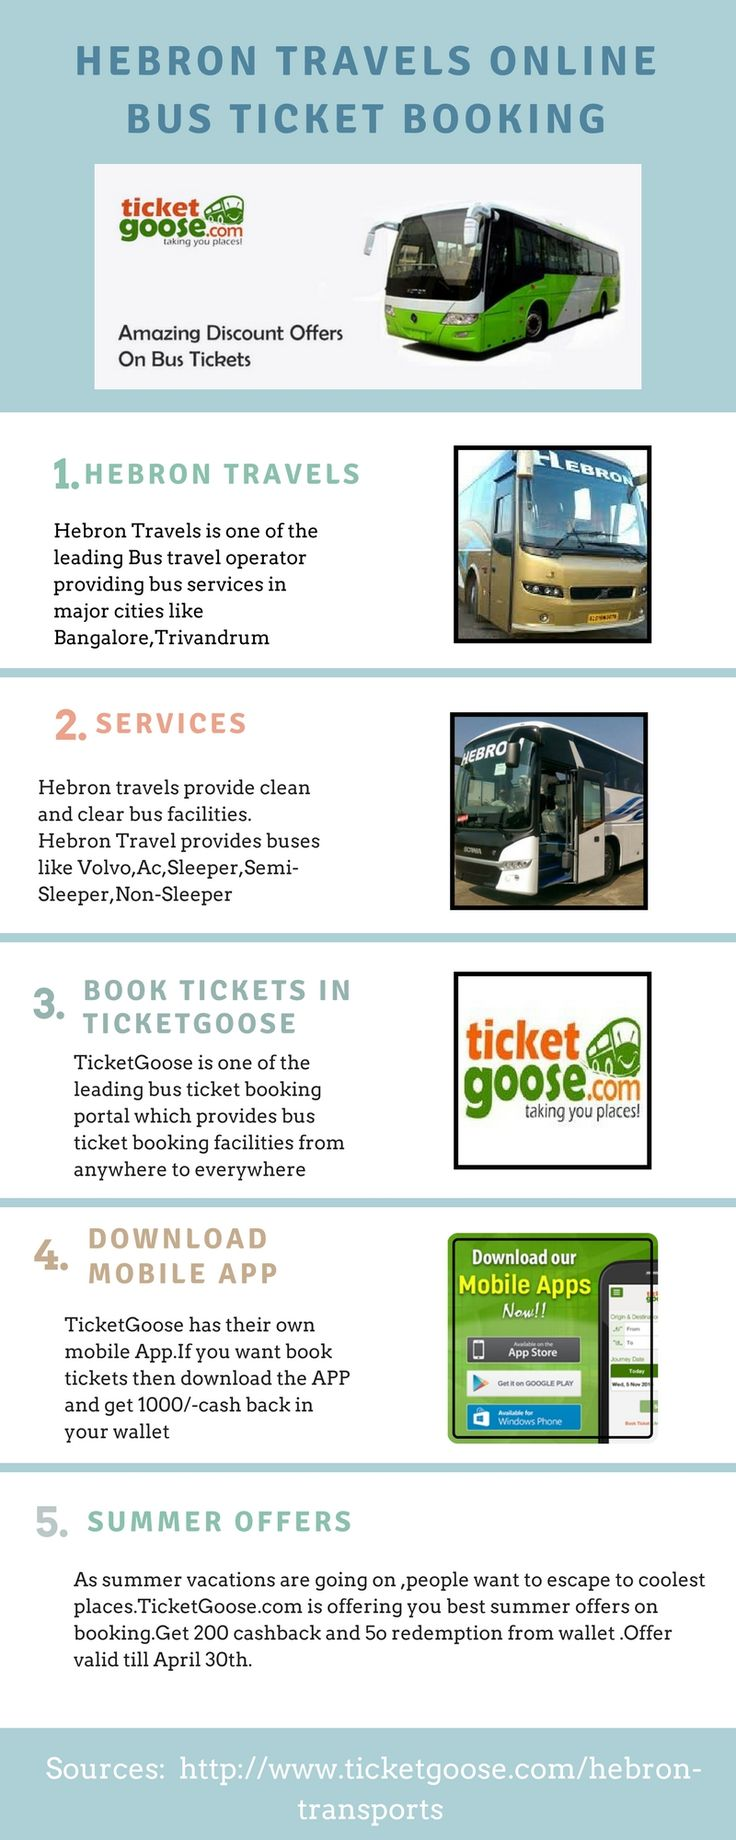 Herbon Travels provides the bus ticket booking to the major cities, Book the tickets for Hebon Travels at ticket goose at the best fare with best service  http://www.ticketgoose.com/hebron-transports